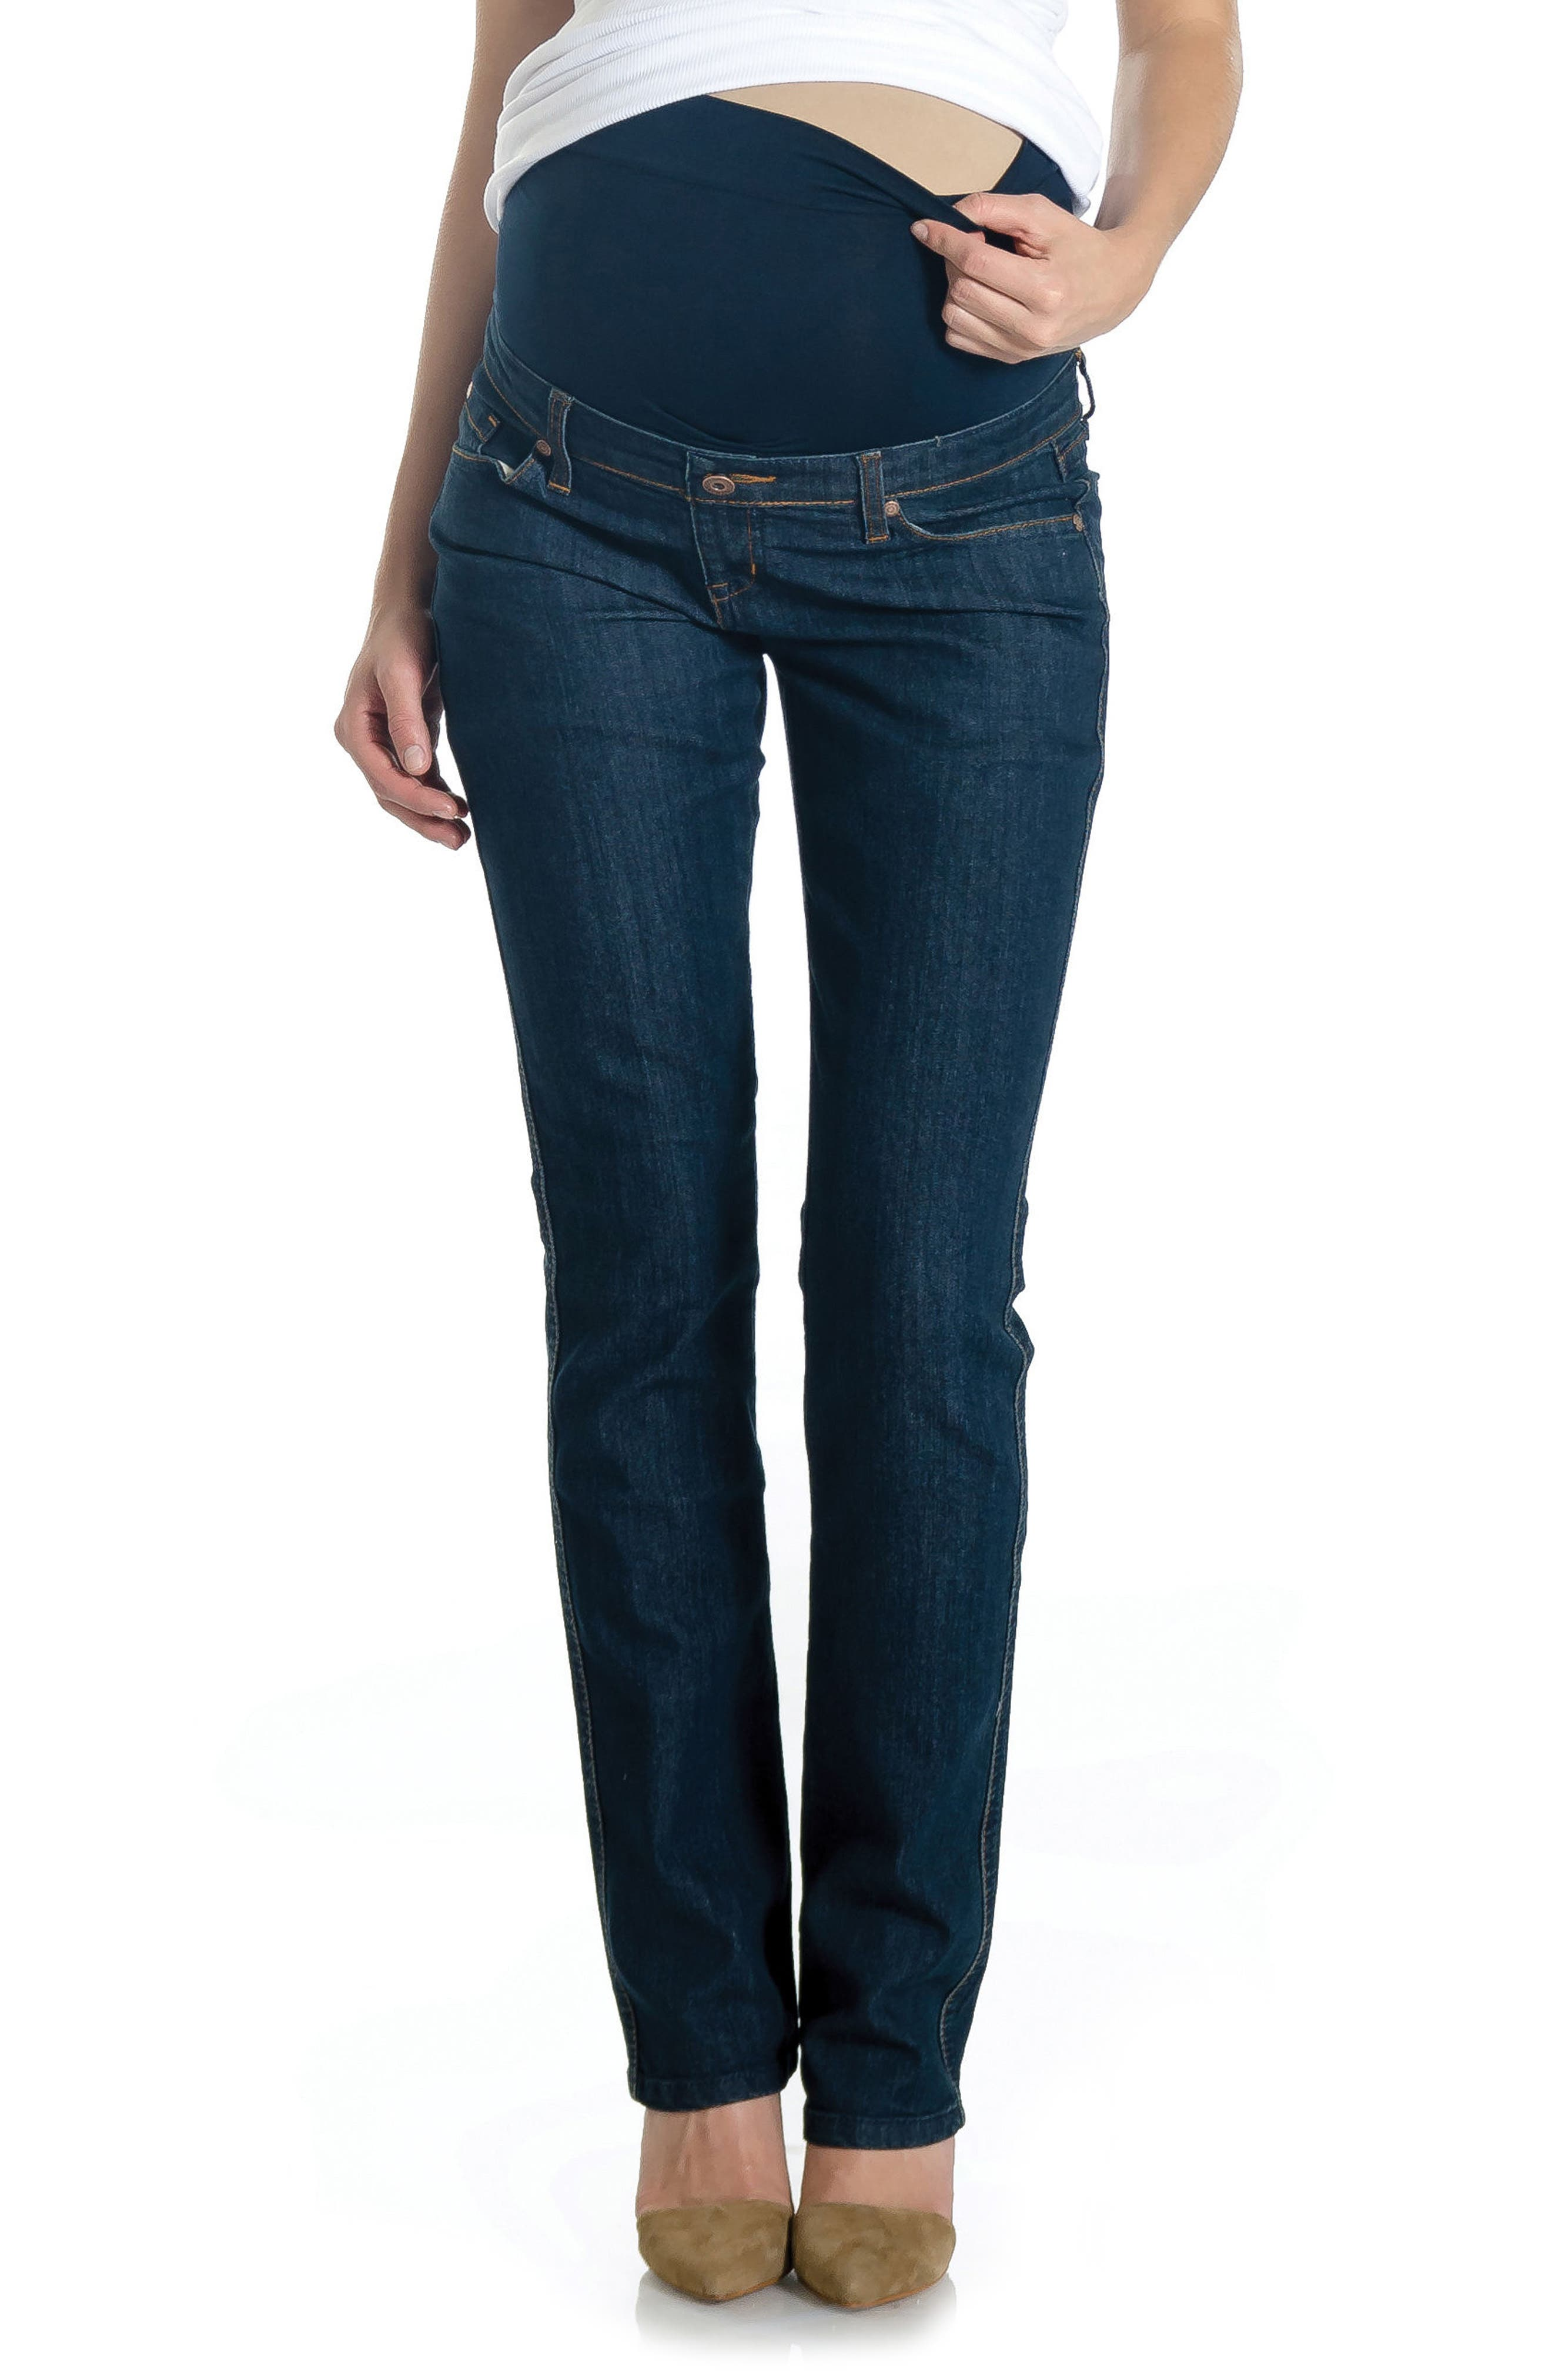 Main Image - Lilac Clothing Maternity Jeans